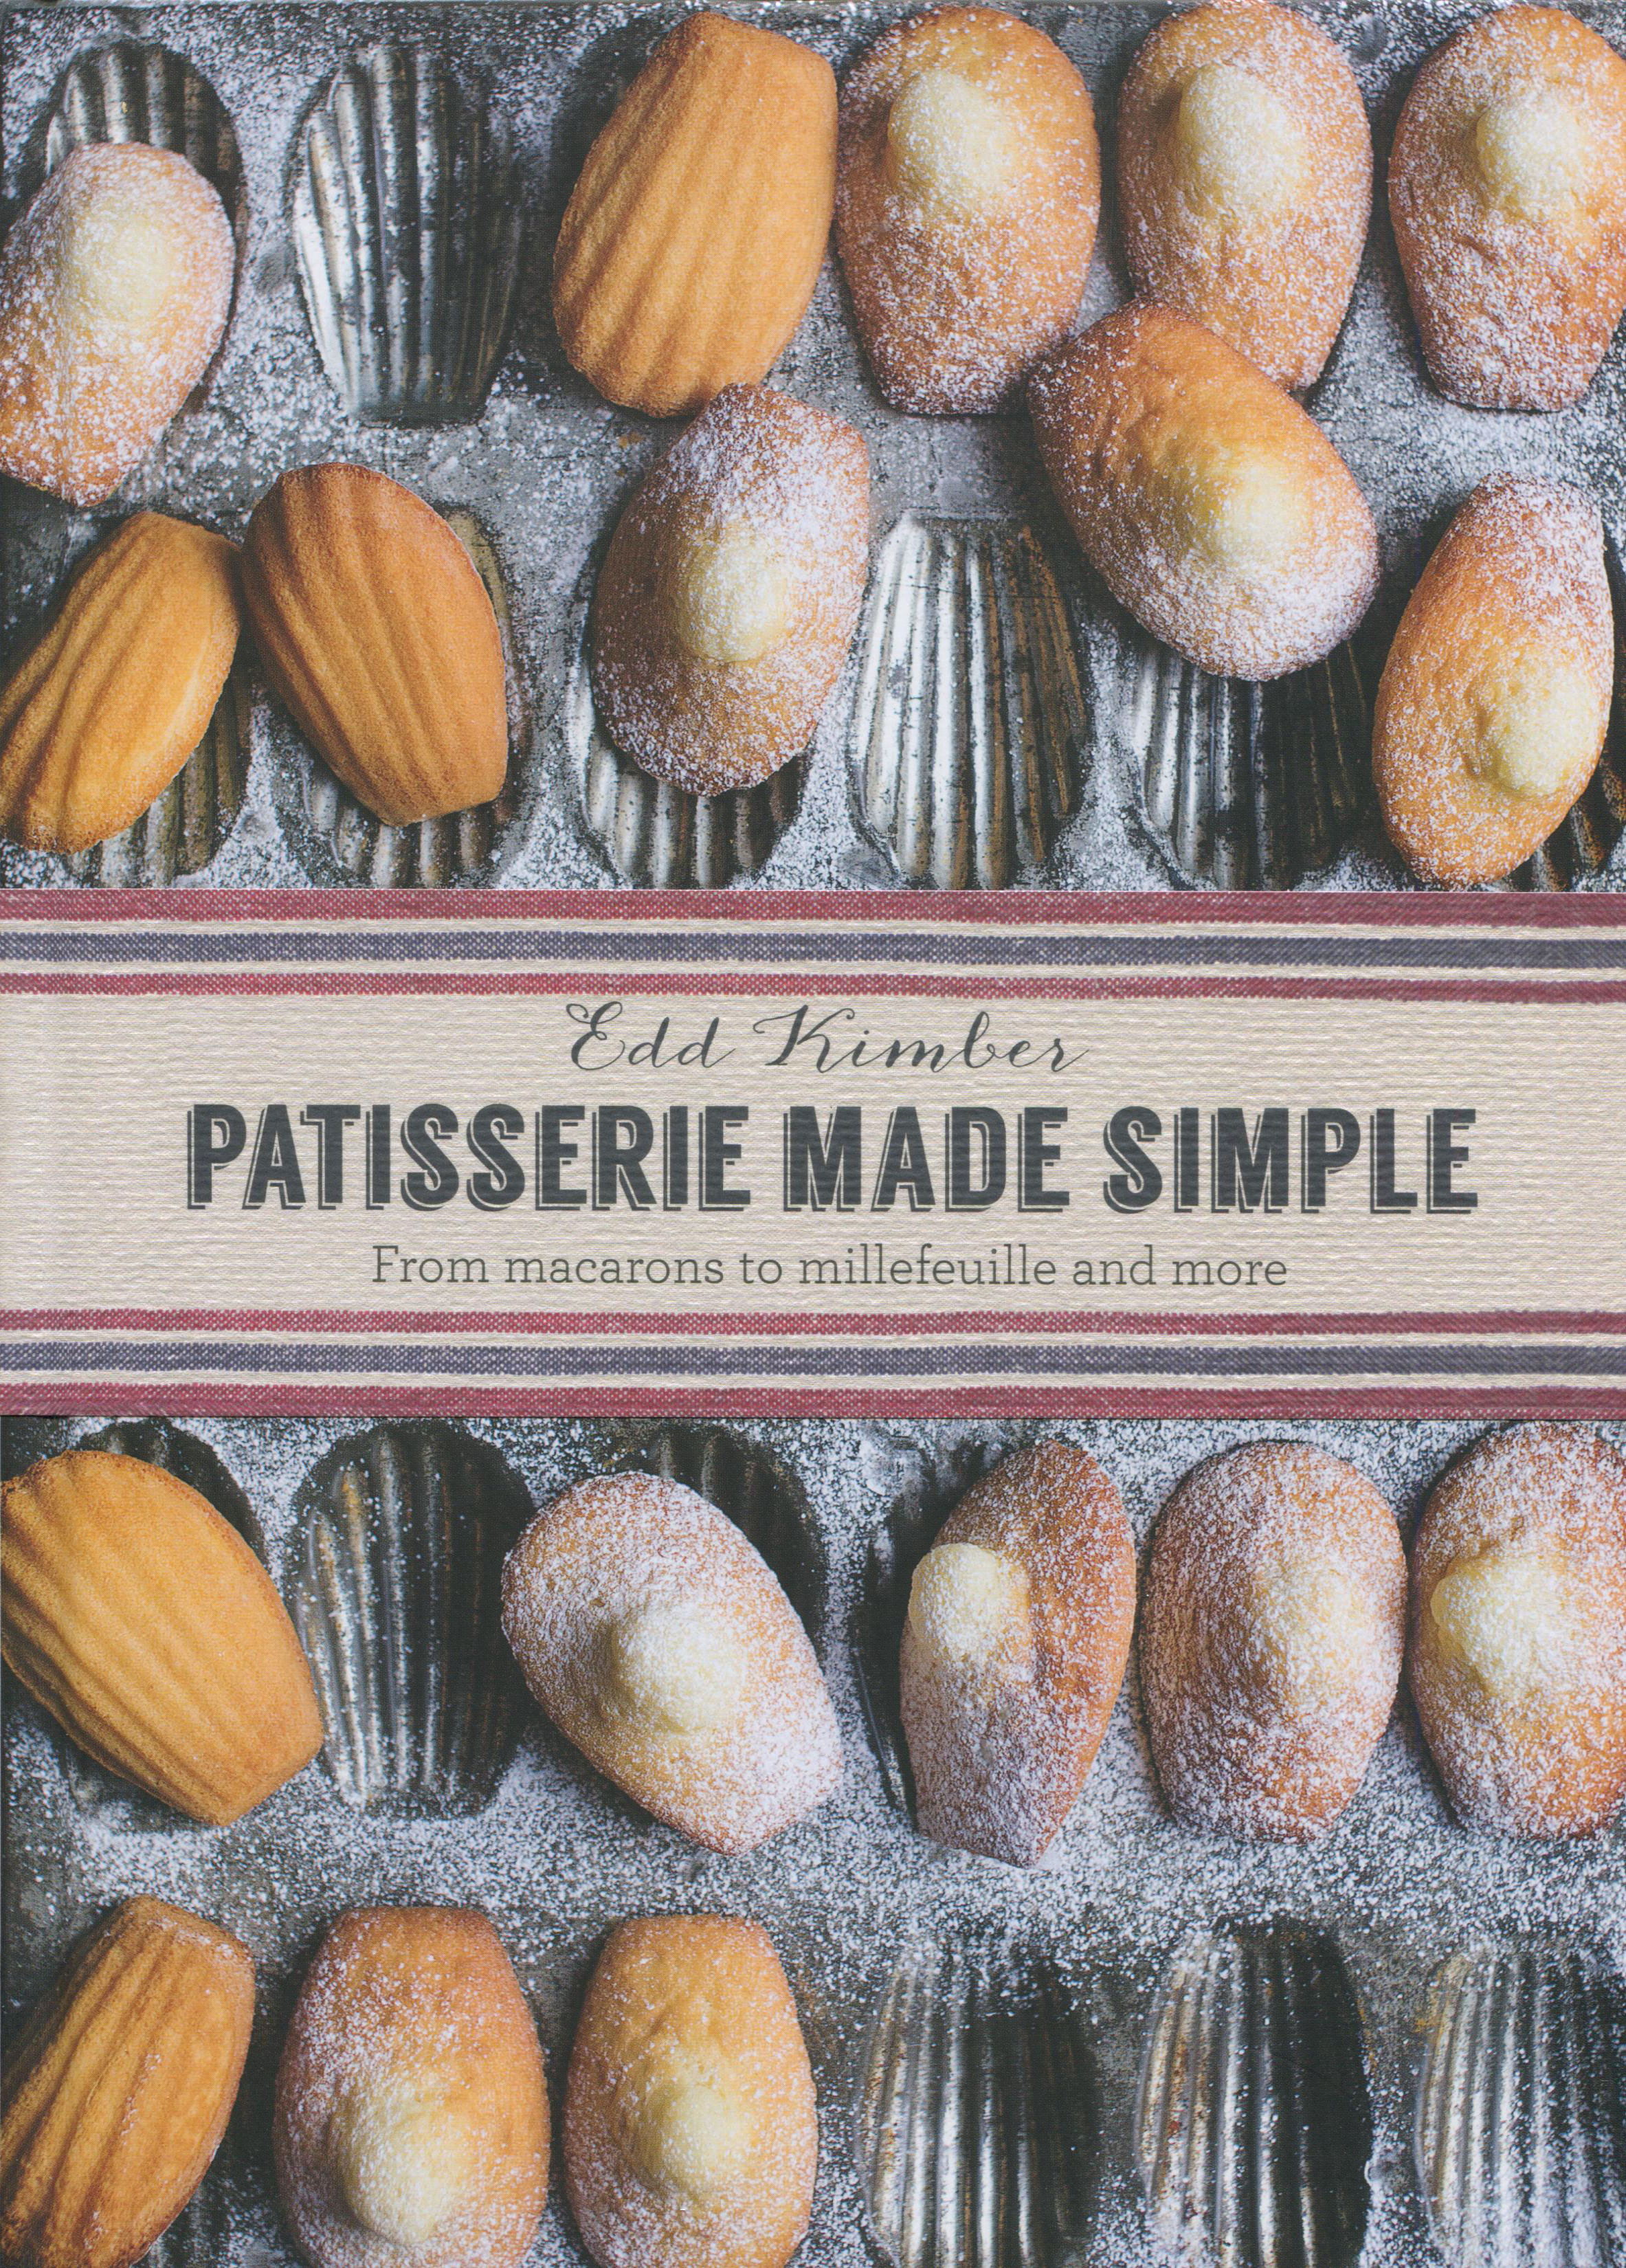 TBT Cookbook Review: Patisserie Made Simple by Edd Kimber